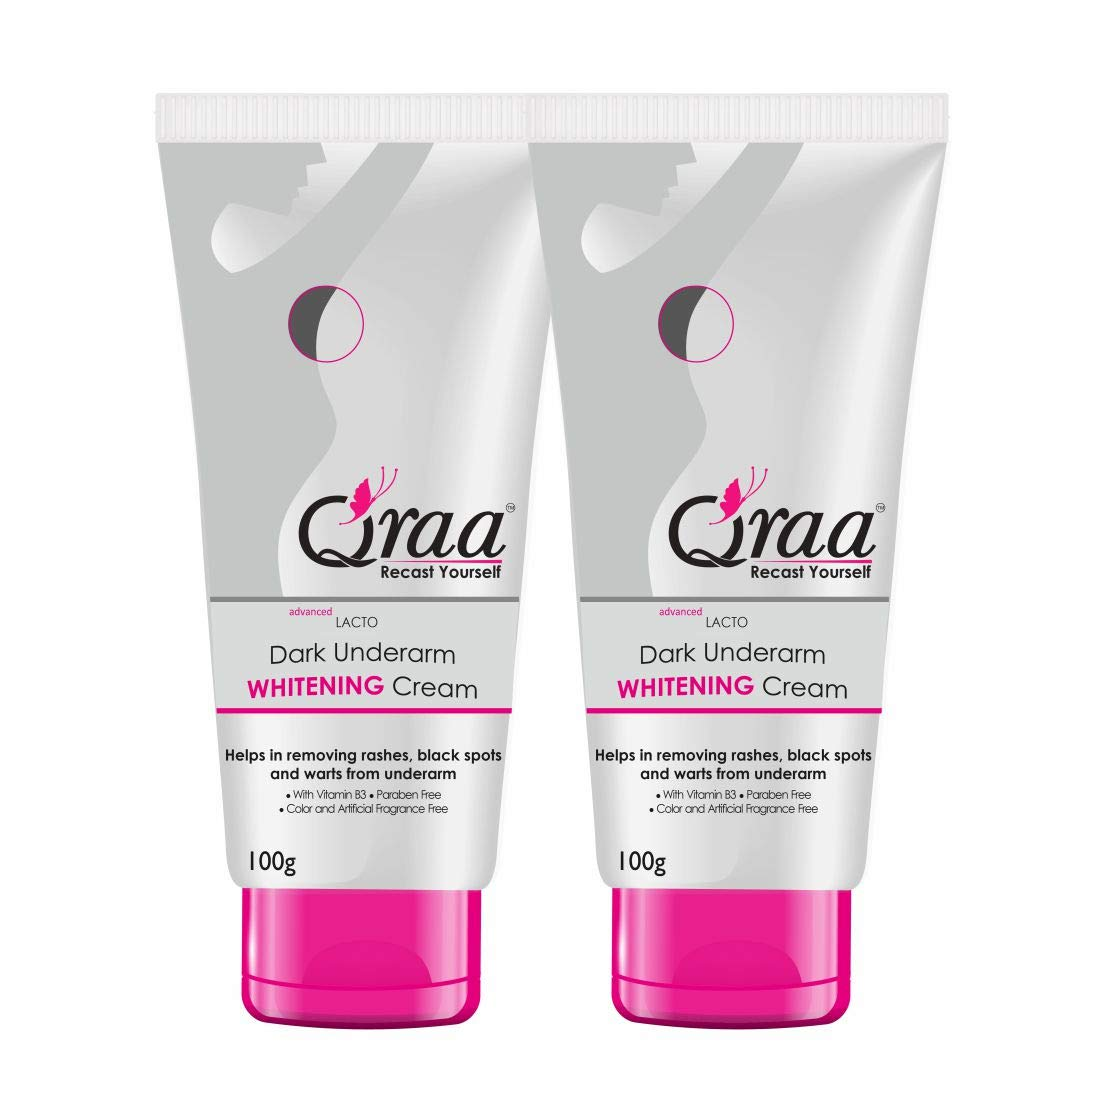 Qraa Advanced Lacto Dark Underarm Whitening Cream